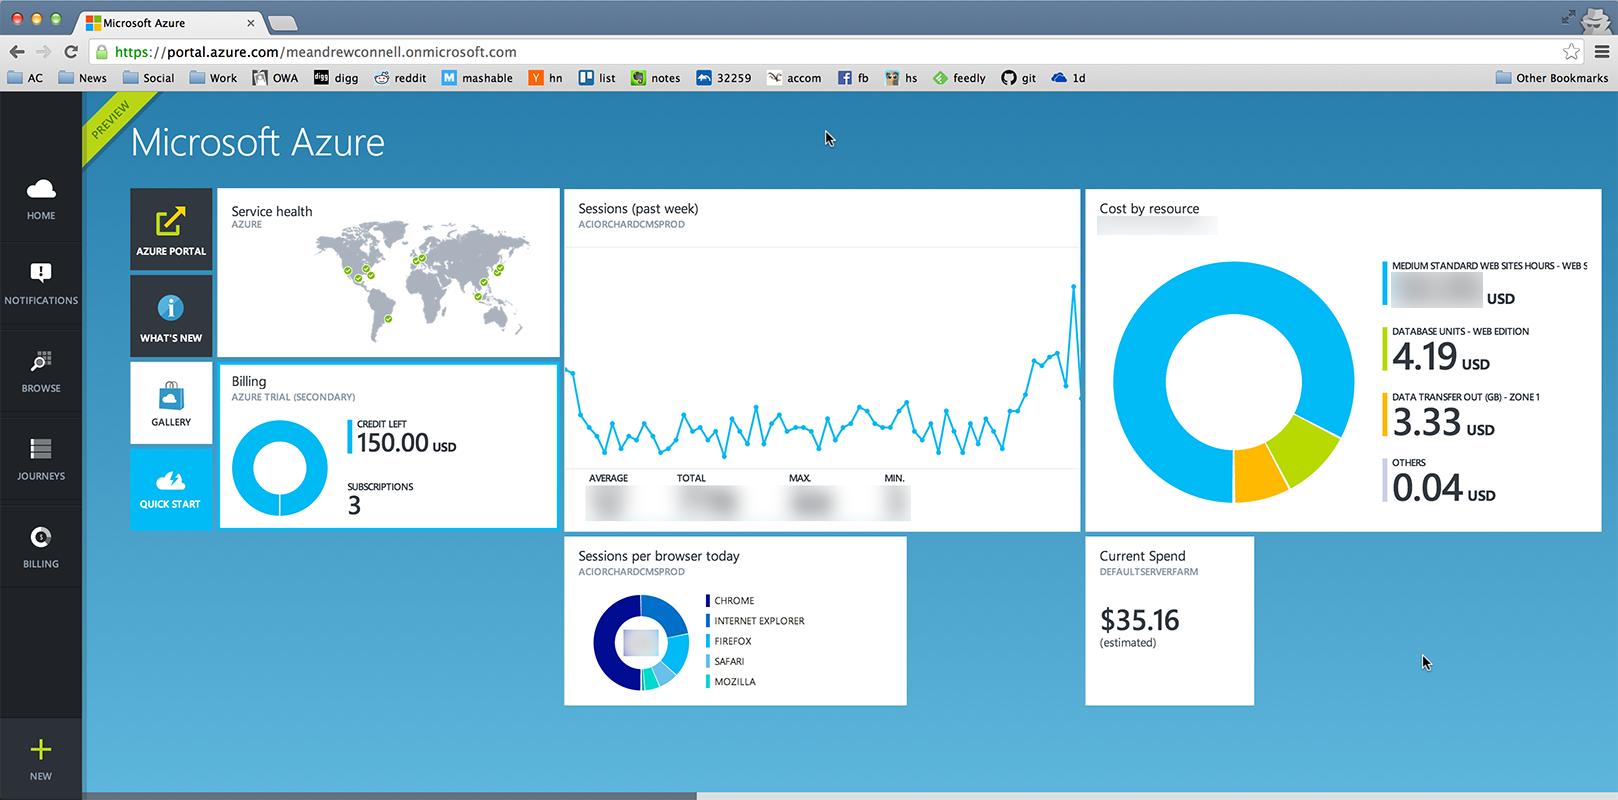 Andrew Connell - The New Azure Management Portal Rocks!